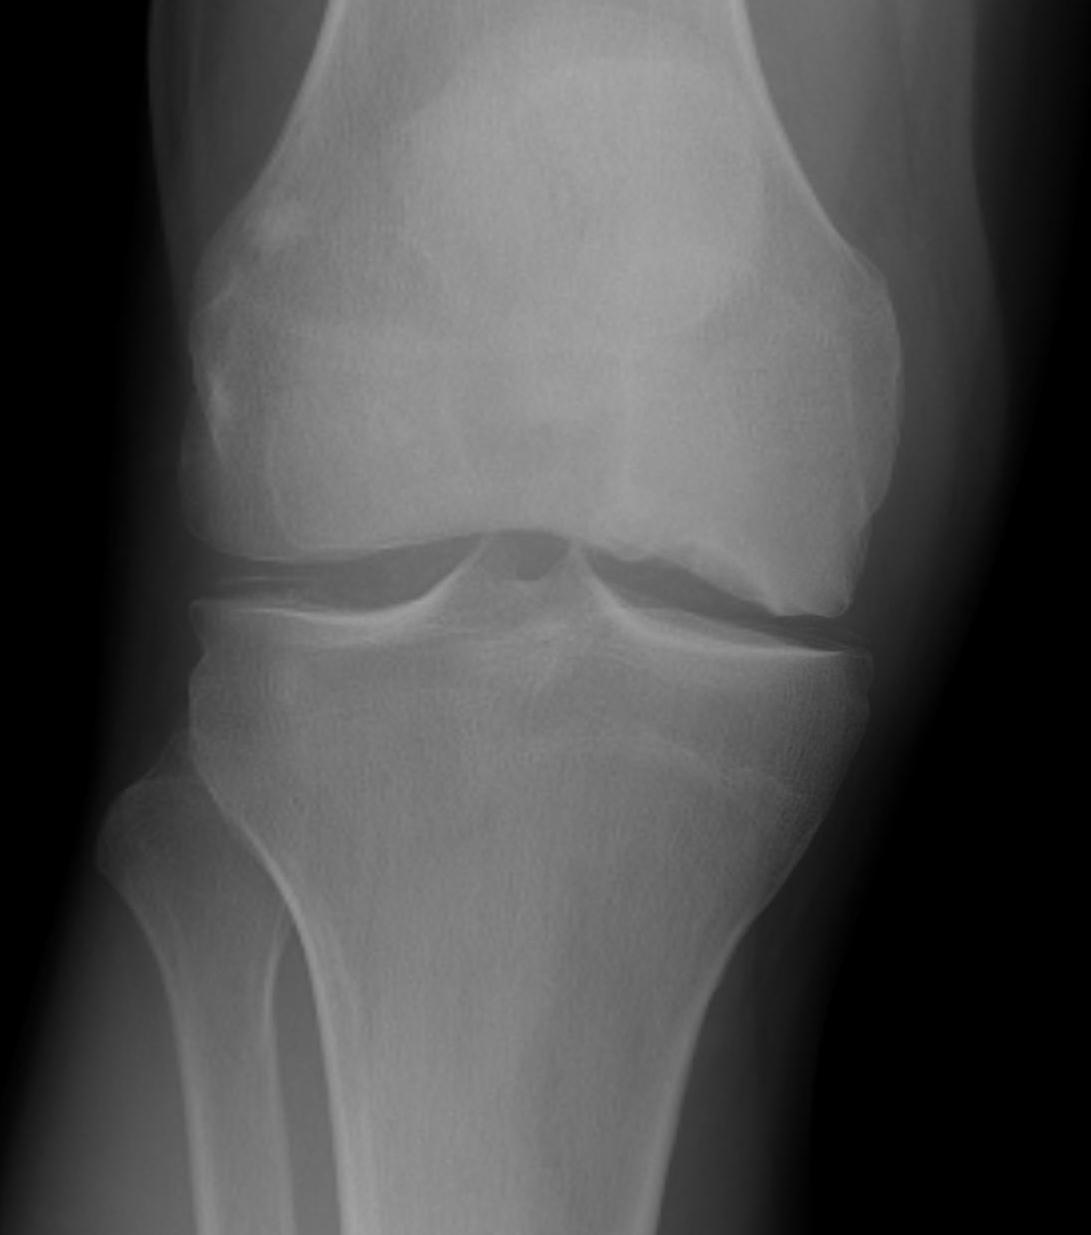 Spontaneous Osteonecrosis of the Knee